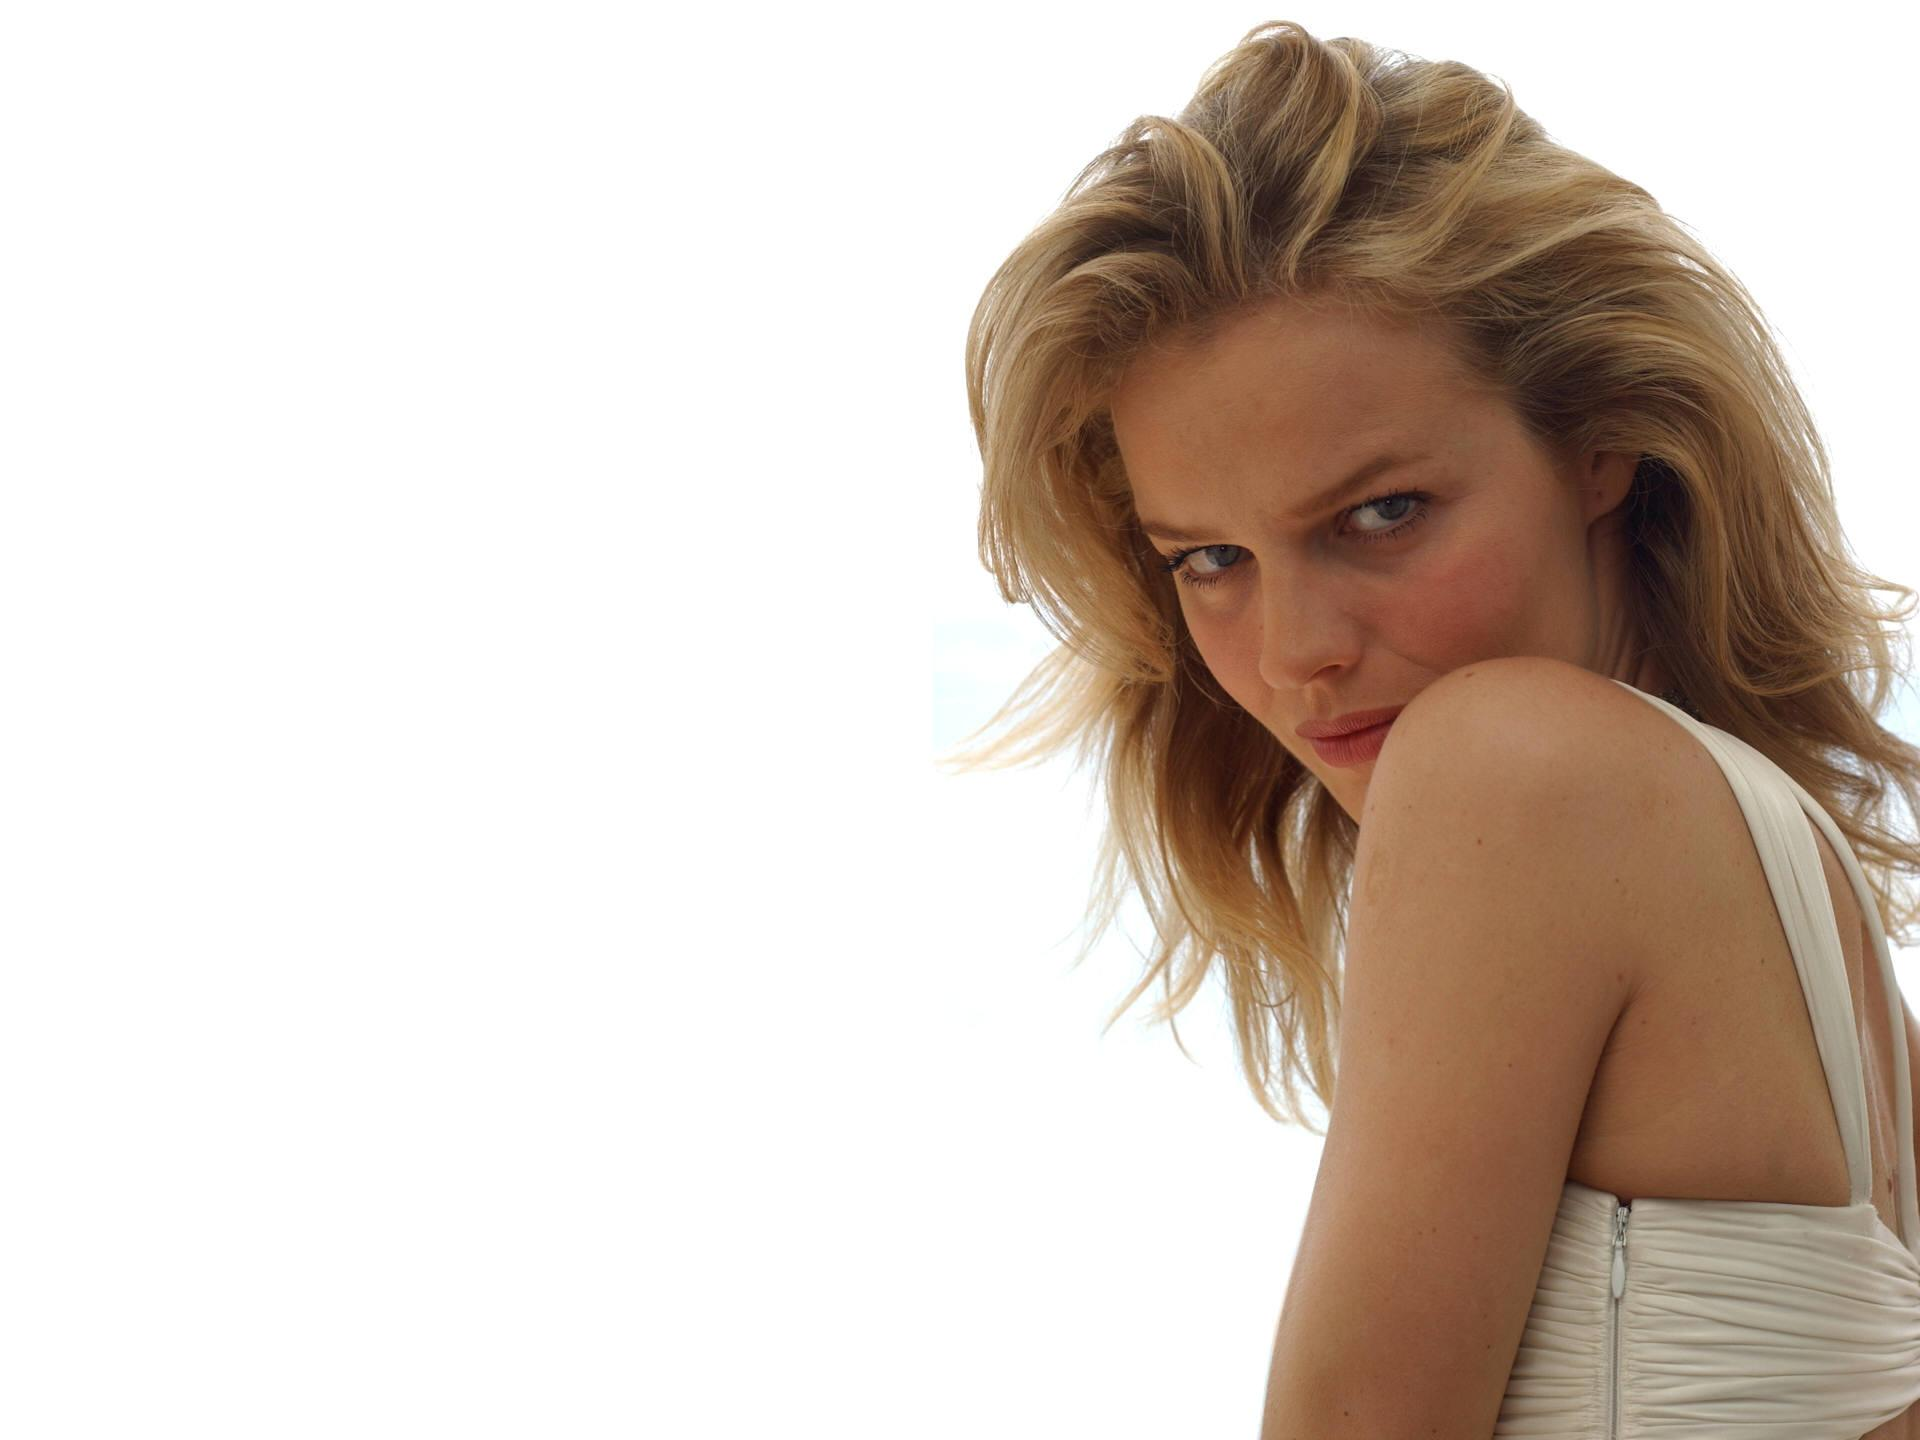 Eva Herzigova at 320 x 480 iPhone size wallpapers HD quality